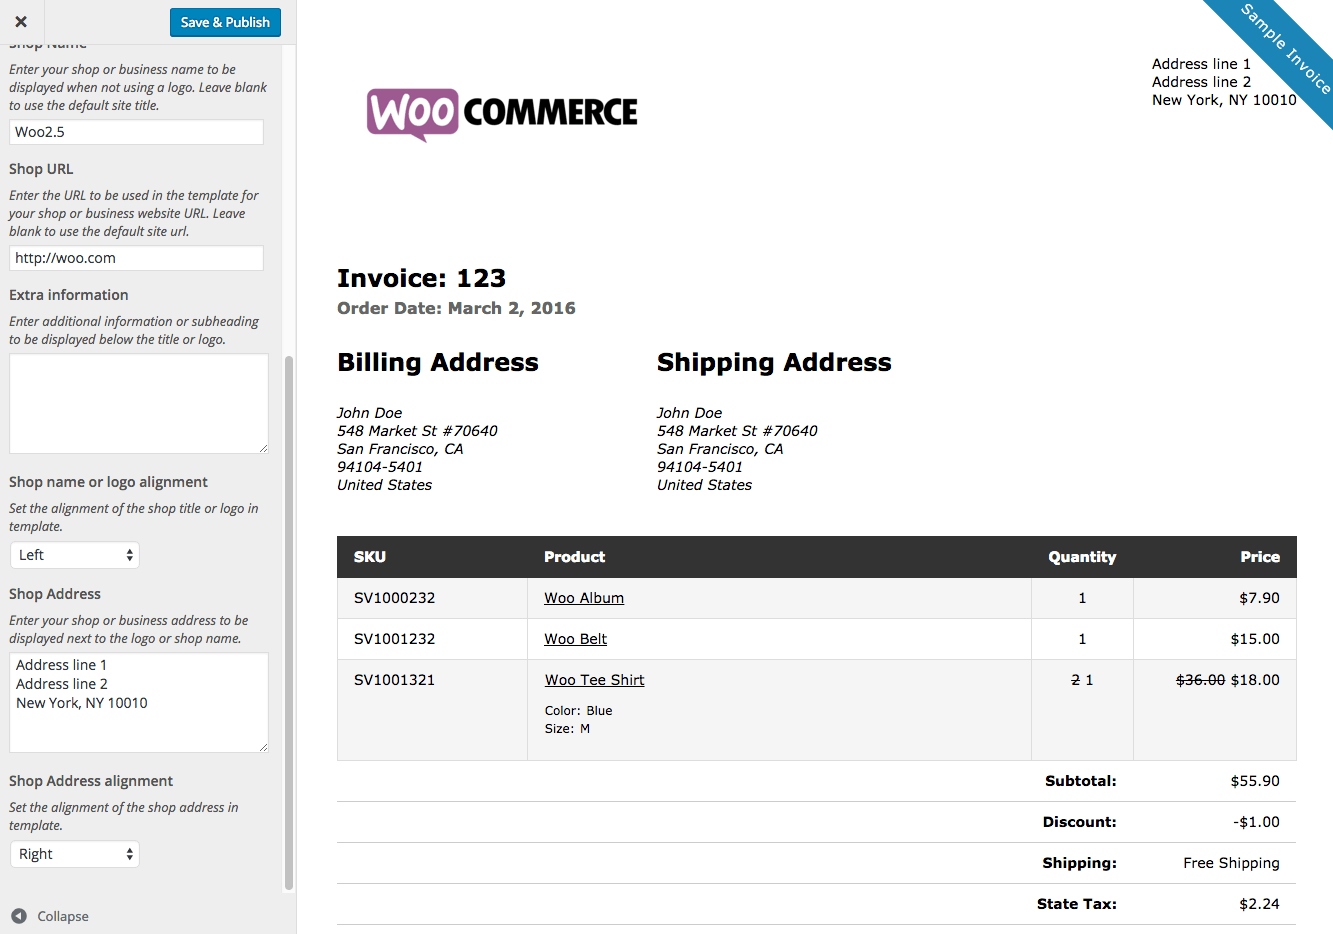 Totallocalus  Seductive Woocommerce Print Invoices Amp Packing Lists  Woocommerce Docs With Glamorous Woocommerce Print Invoices  Packing Lists Customizer With Captivating Auto Shop Invoice Template Also Medical Records Invoice In Addition Free Printable Business Invoices And Easy Invoices As Well As Free Medical Invoice Template Additionally Creating An Invoice In Quickbooks From Docswoocommercecom With Totallocalus  Glamorous Woocommerce Print Invoices Amp Packing Lists  Woocommerce Docs With Captivating Woocommerce Print Invoices  Packing Lists Customizer And Seductive Auto Shop Invoice Template Also Medical Records Invoice In Addition Free Printable Business Invoices From Docswoocommercecom